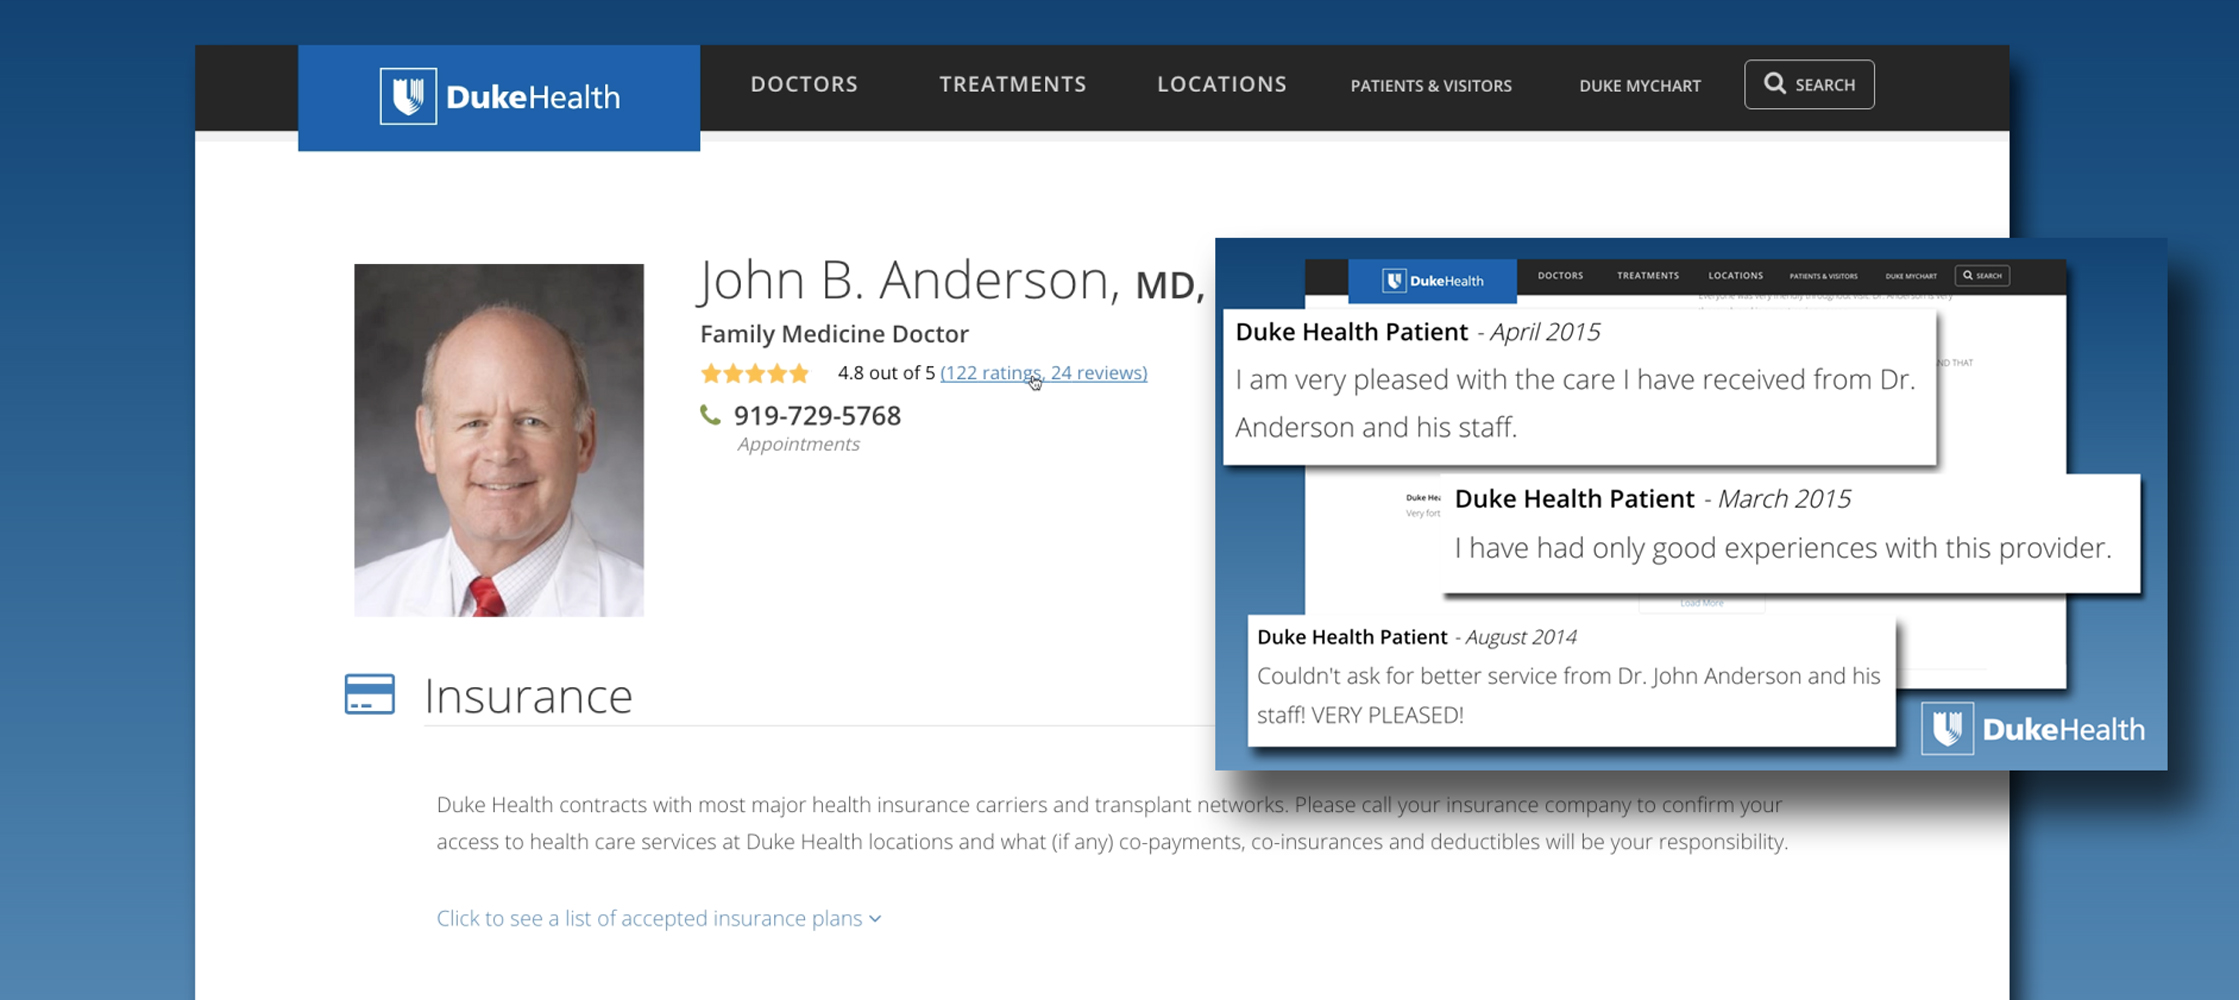 You can now see a provider's star rating along with reviews from their patients.